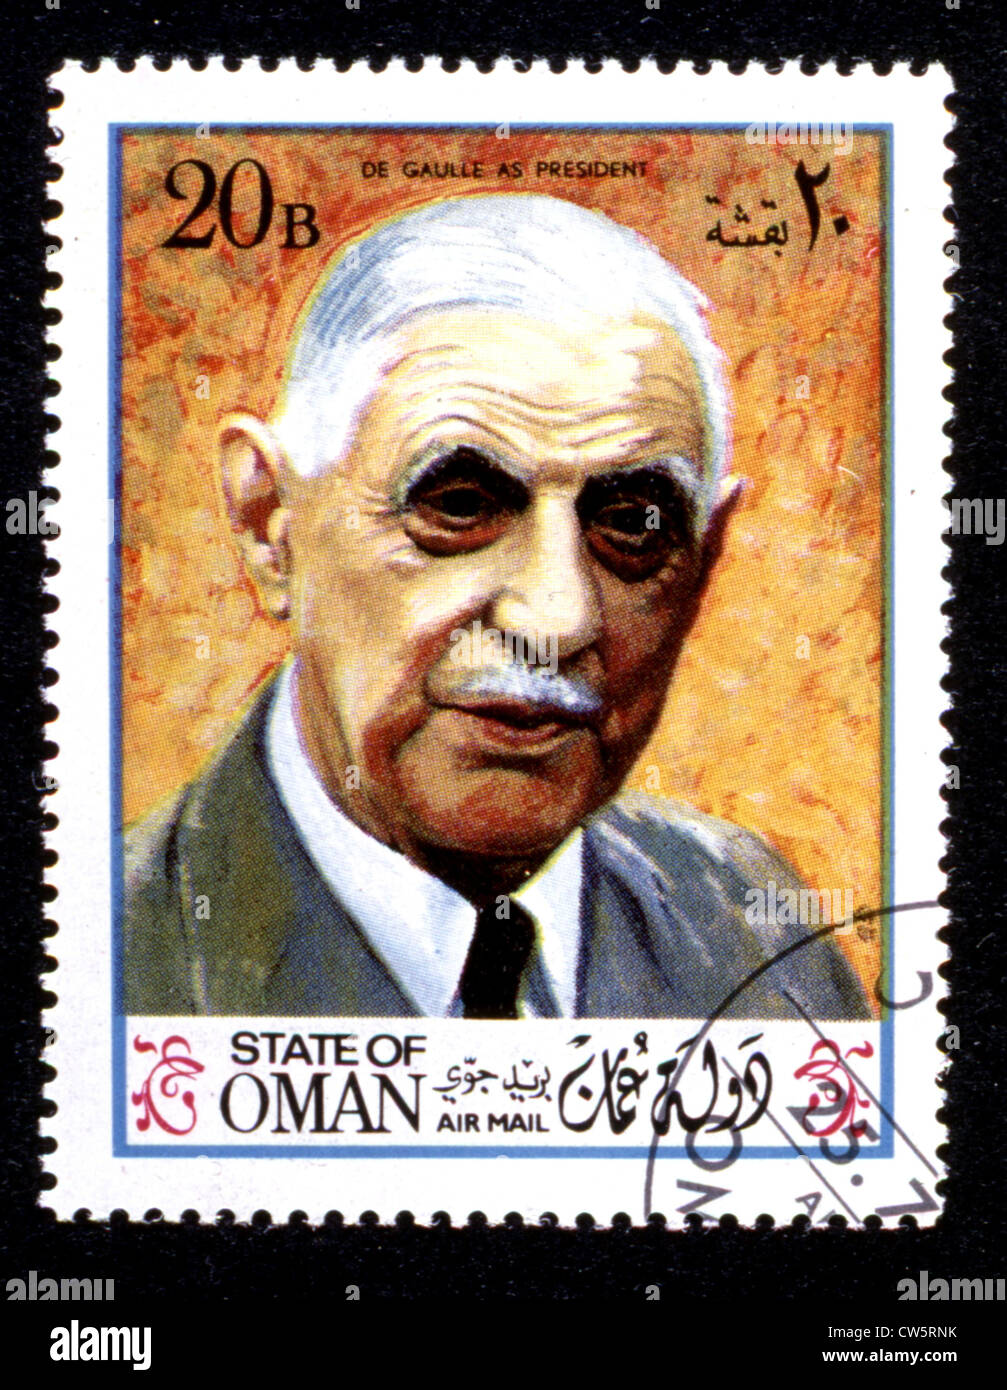 Postage stamp featuring the portrait of General de Gaulle - Stock Image